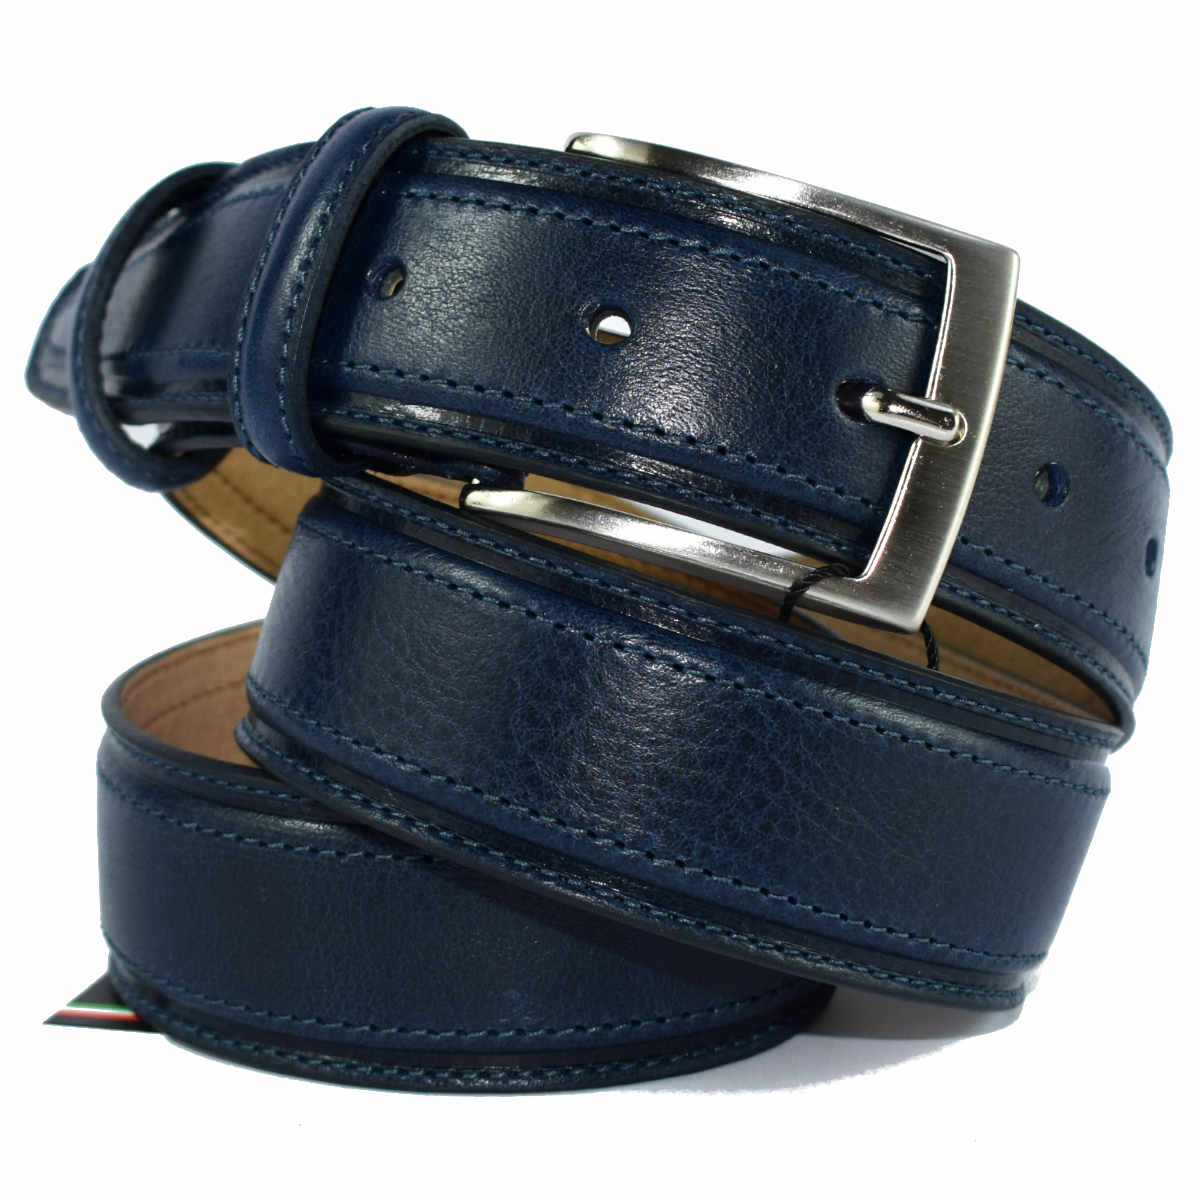 6448235 DOUBLE SEWING BELT by Bottega Fiorentina